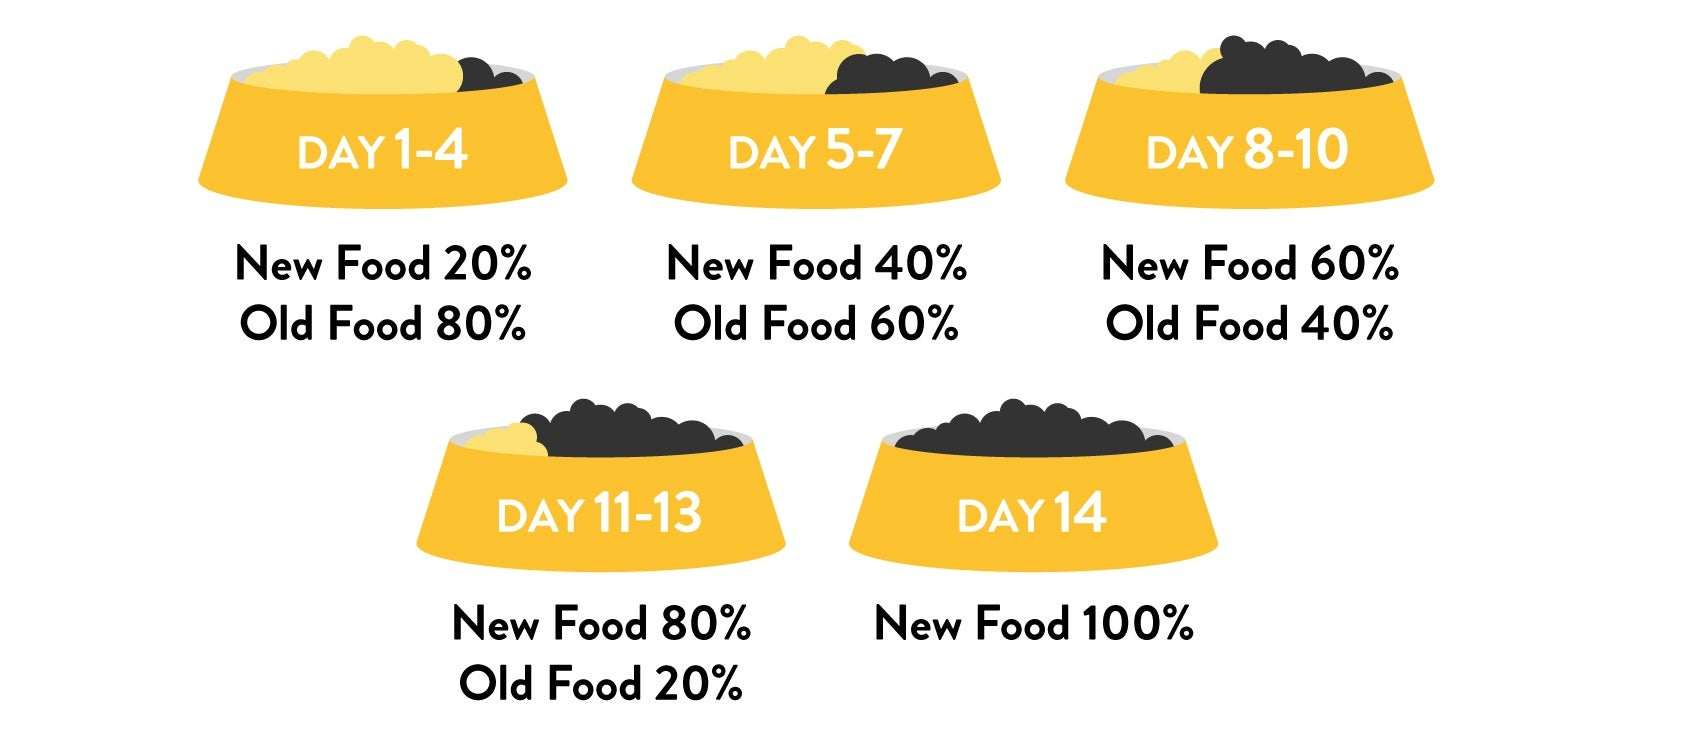 Gradually transition your dog to new food over 14 days.